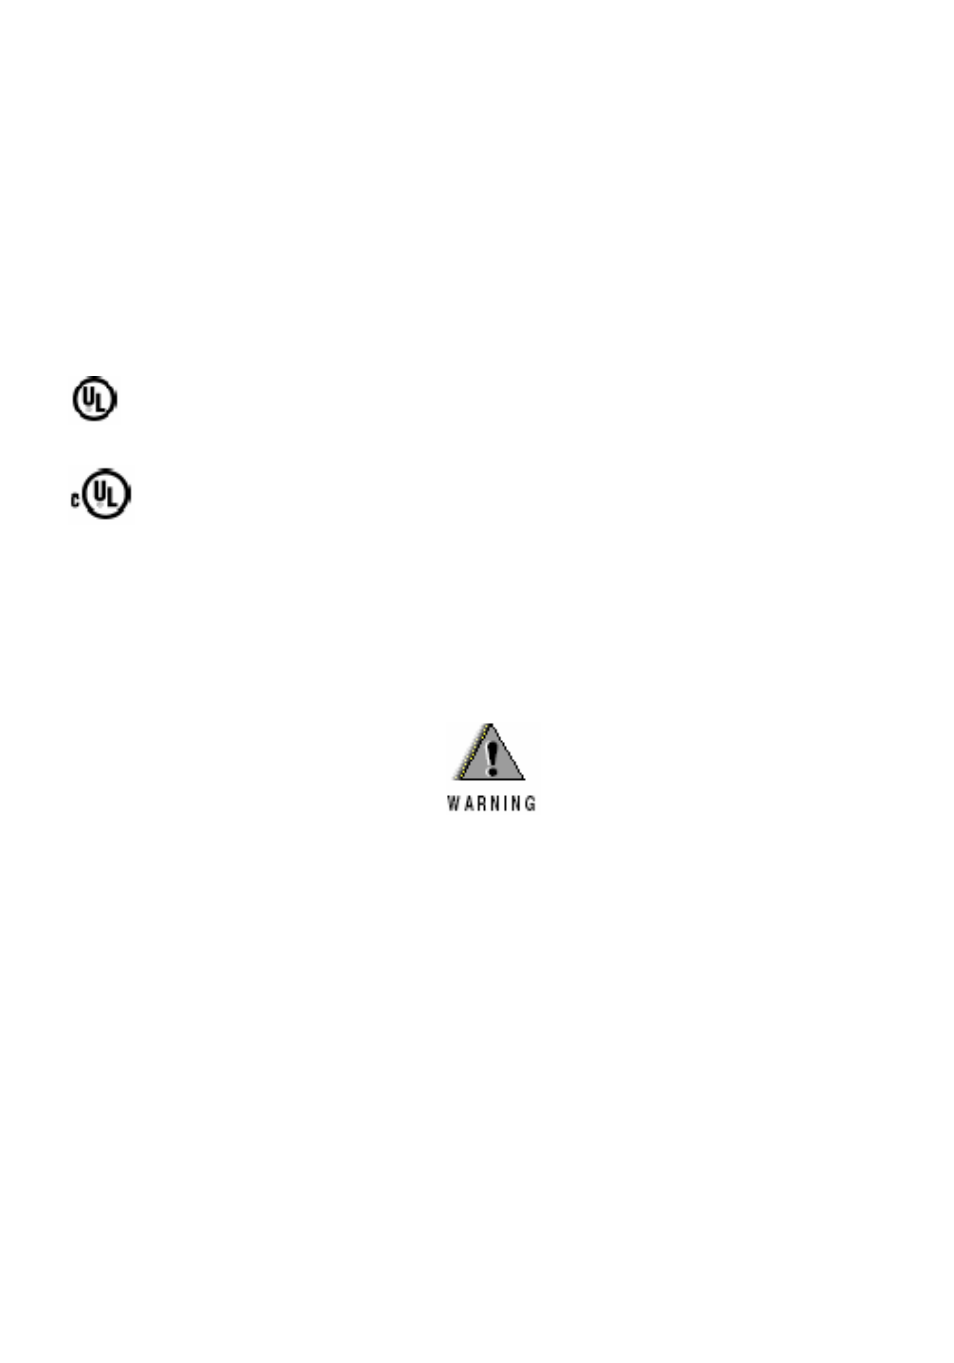 motorola minitor v user manual page 2 17 original mode rh manualsdir com motorola minitor v manual pdf motorola minitor v charger manual